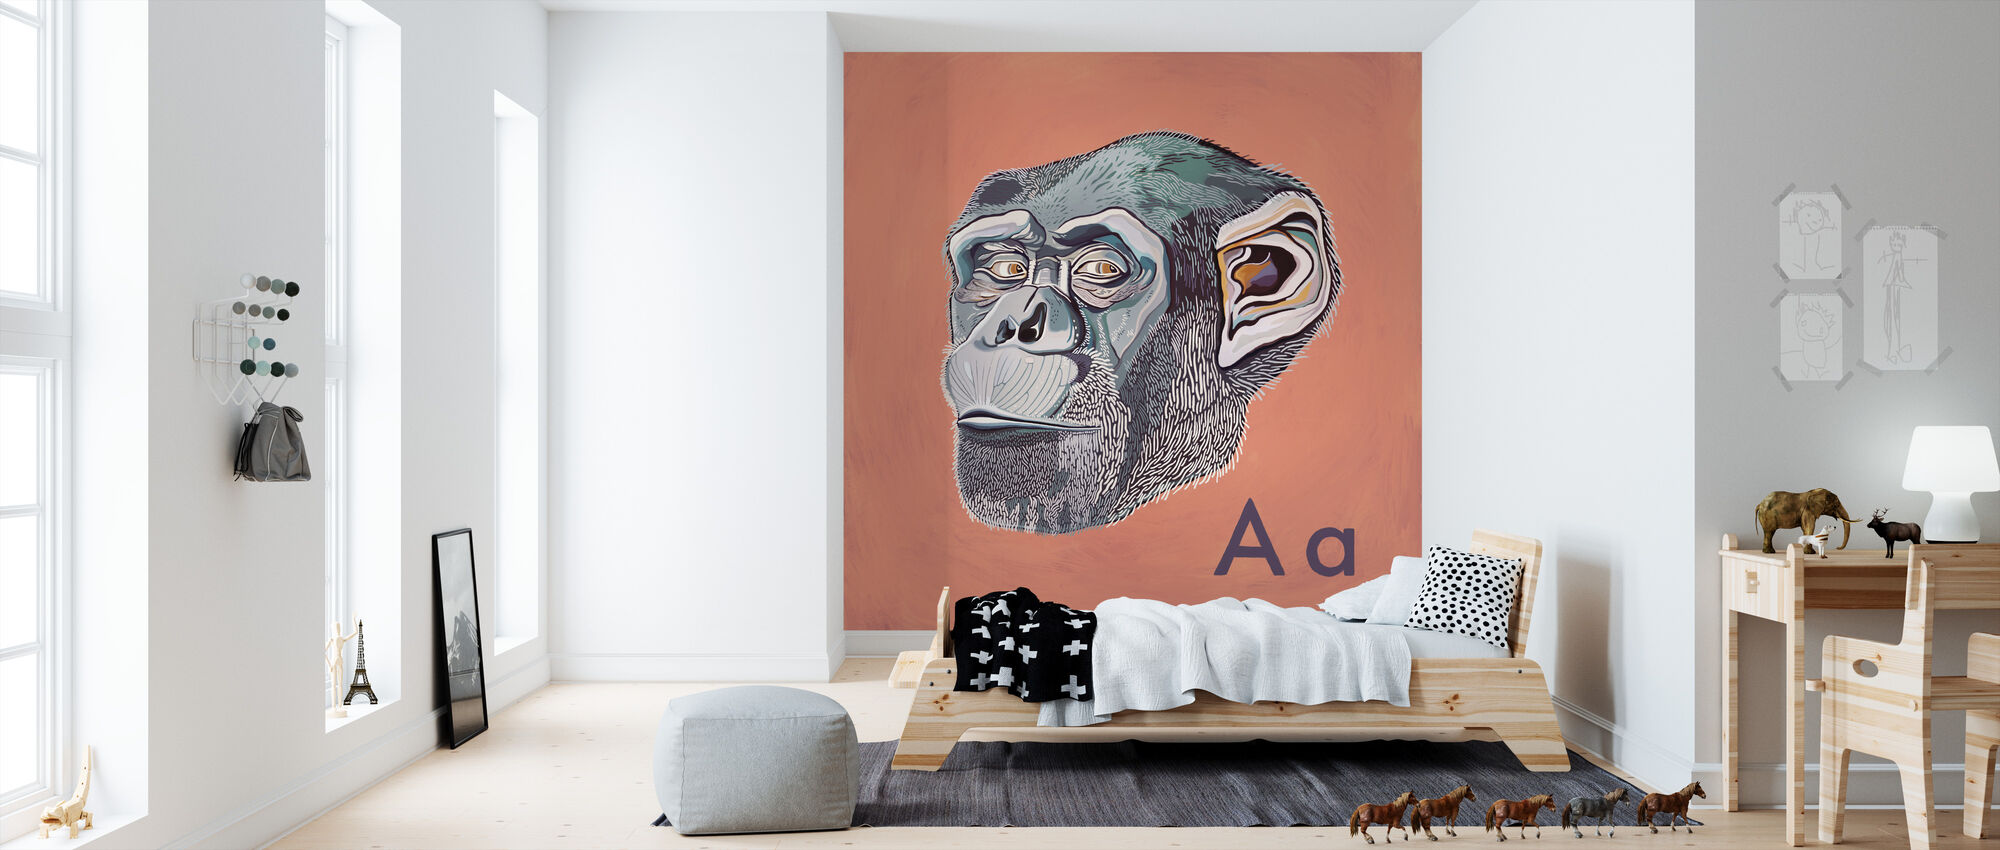 Ape with A - Wallpaper - Kids Room